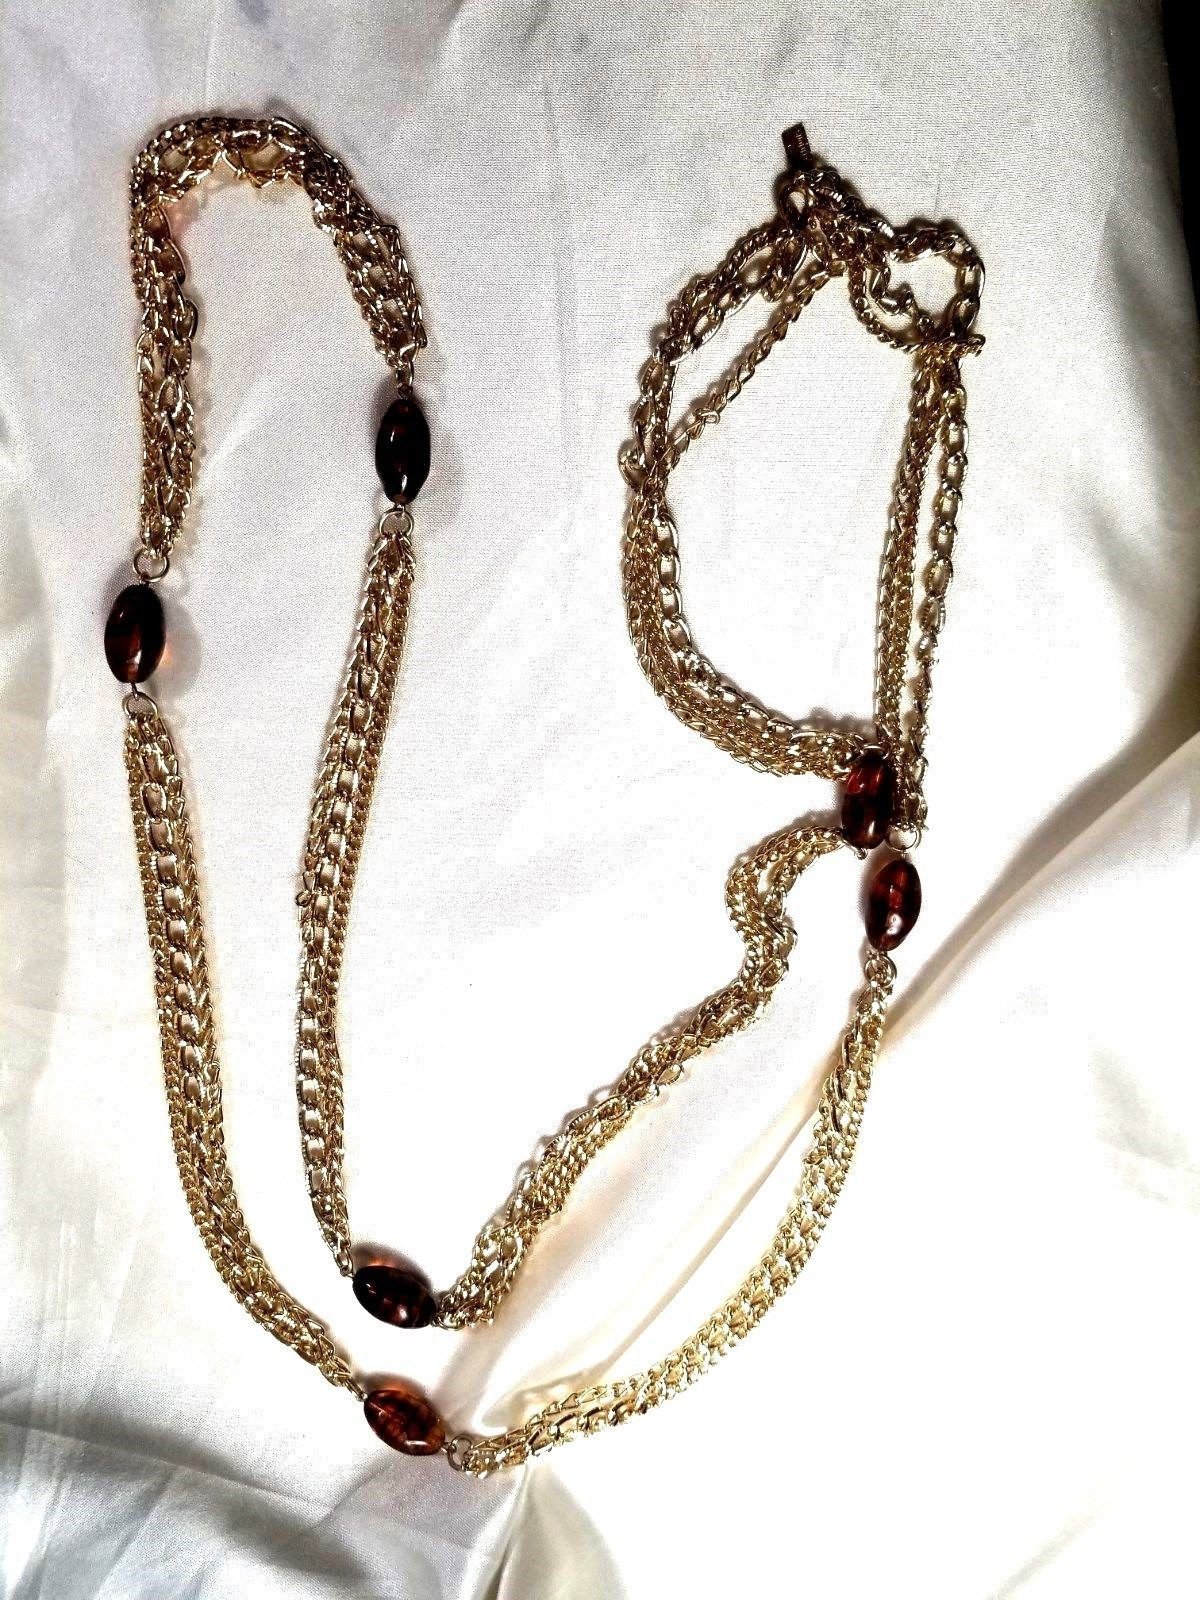 "Emmons 54"" Goldtone Chain w Amber Beads 3 Strand Flapper Necklace Very VTG - $20.00"